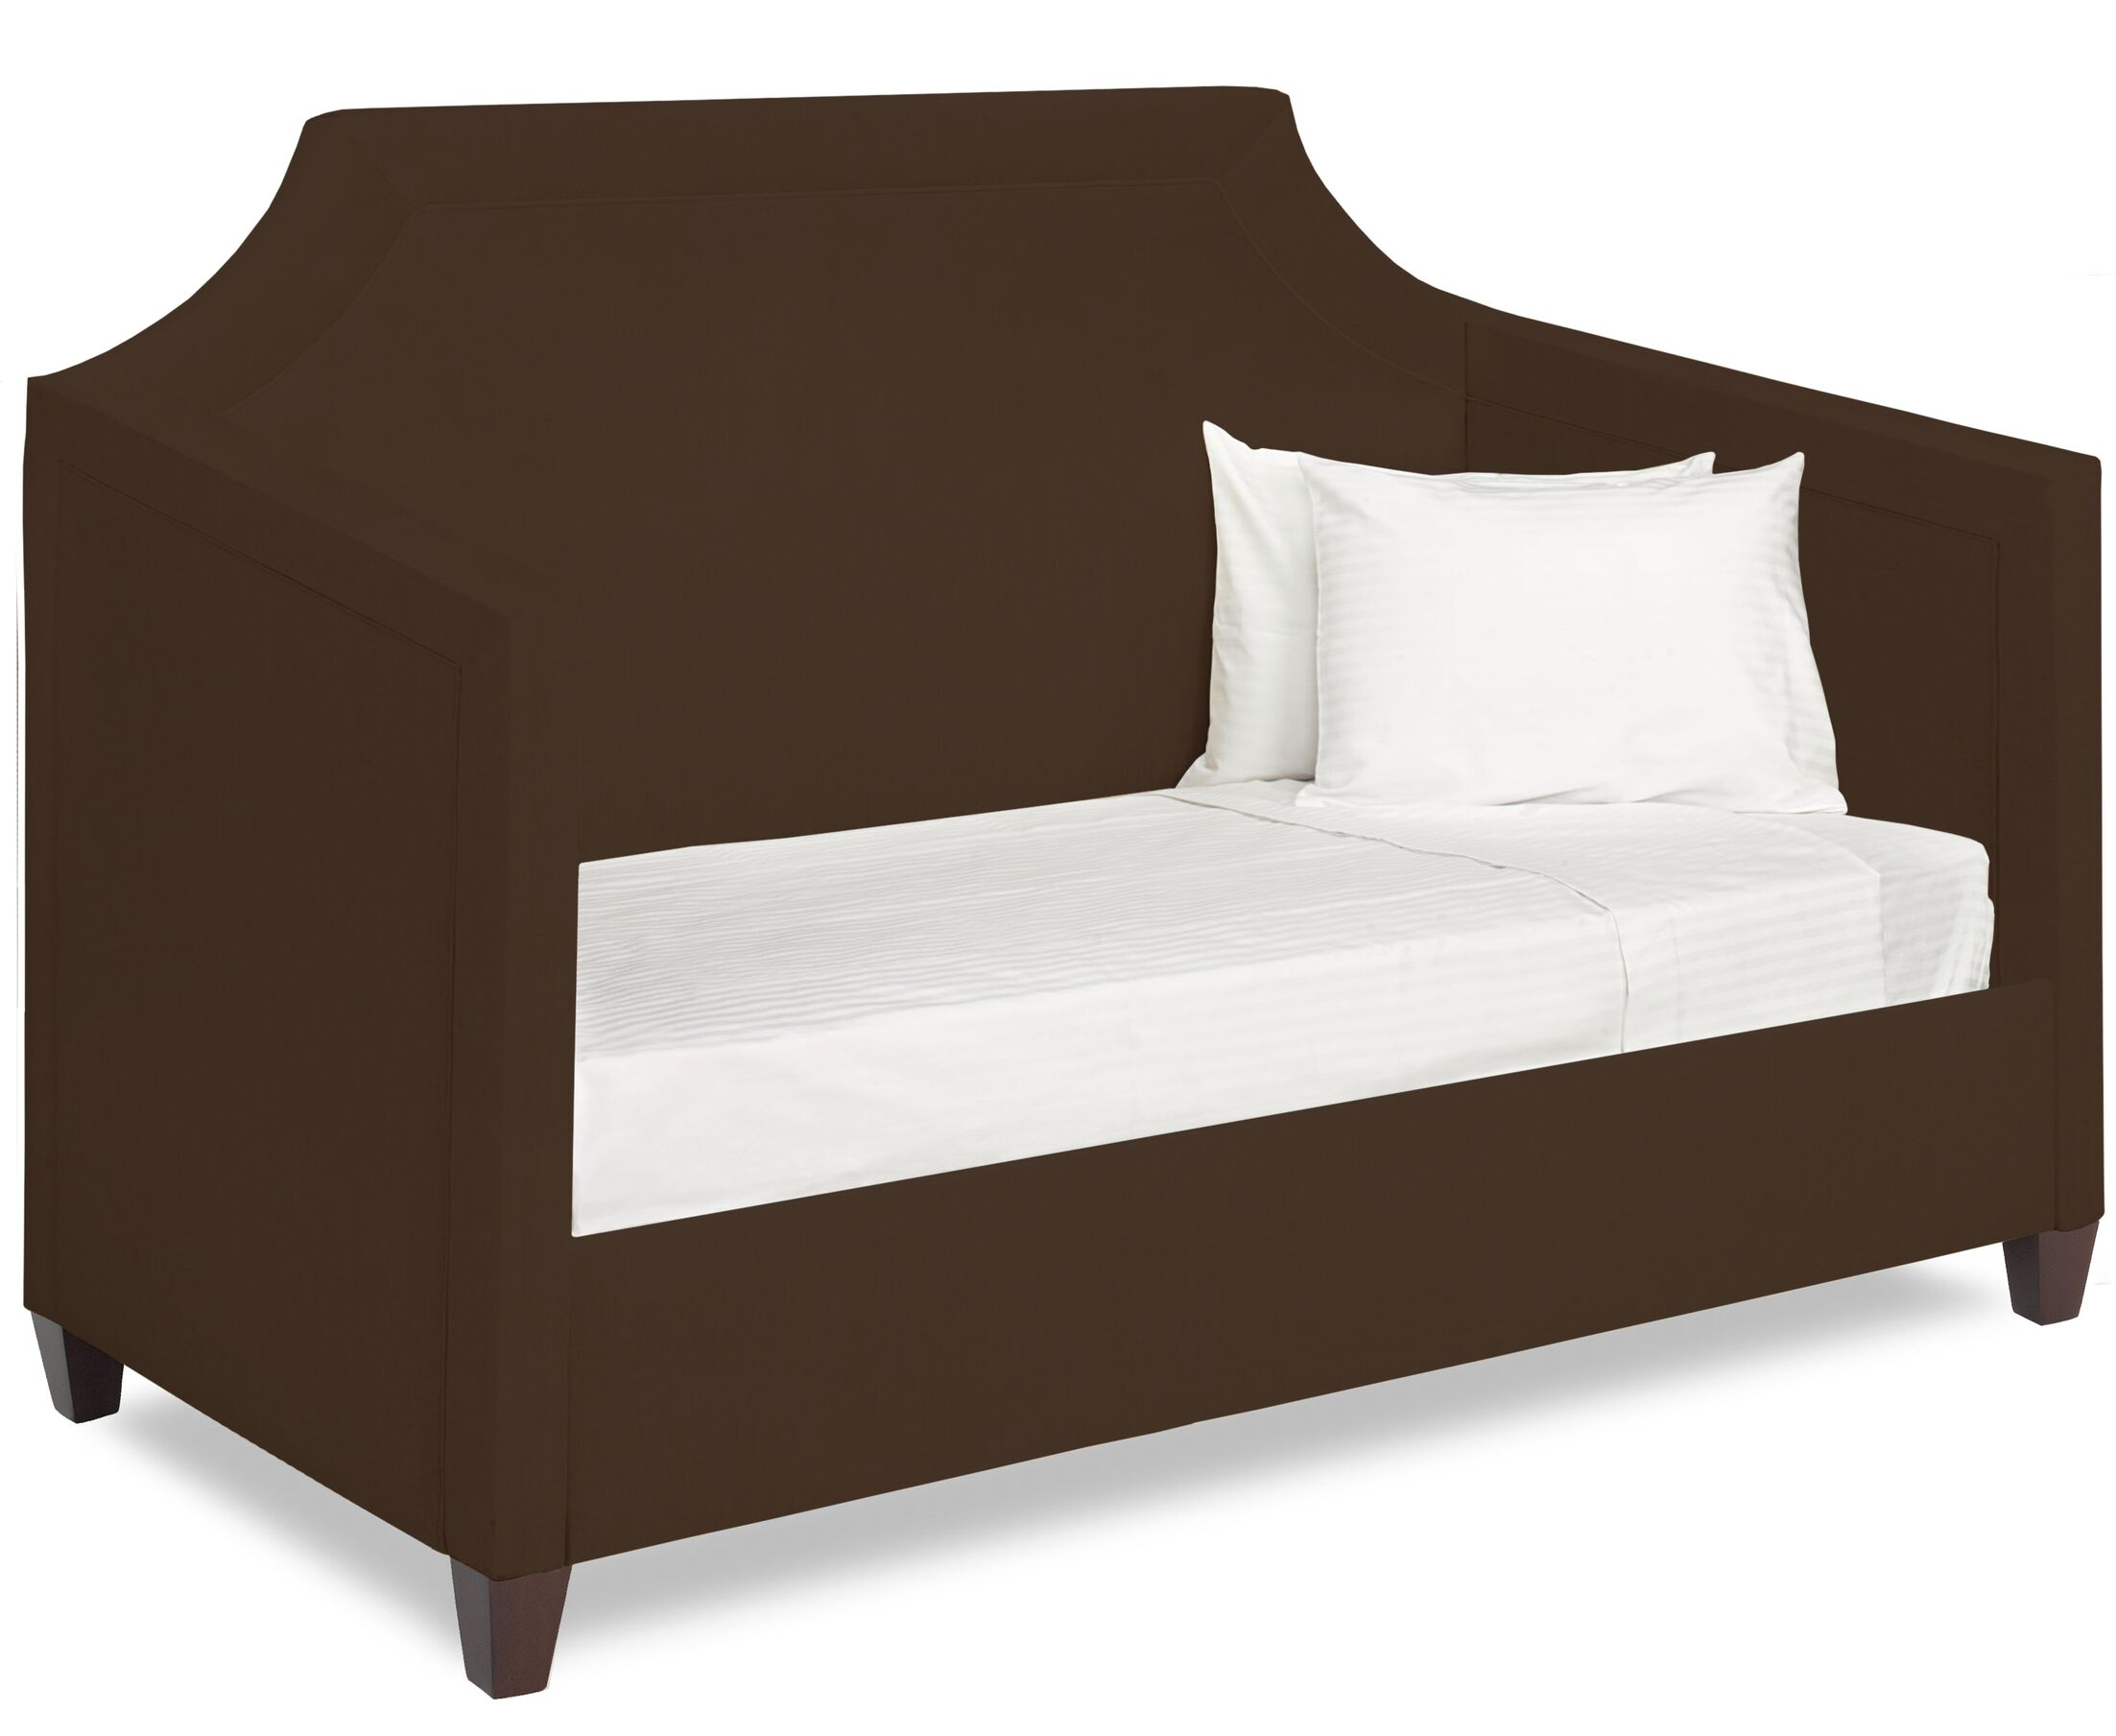 Dreamtime Daybed with Mattress Size: Twin, Color: Chocolate